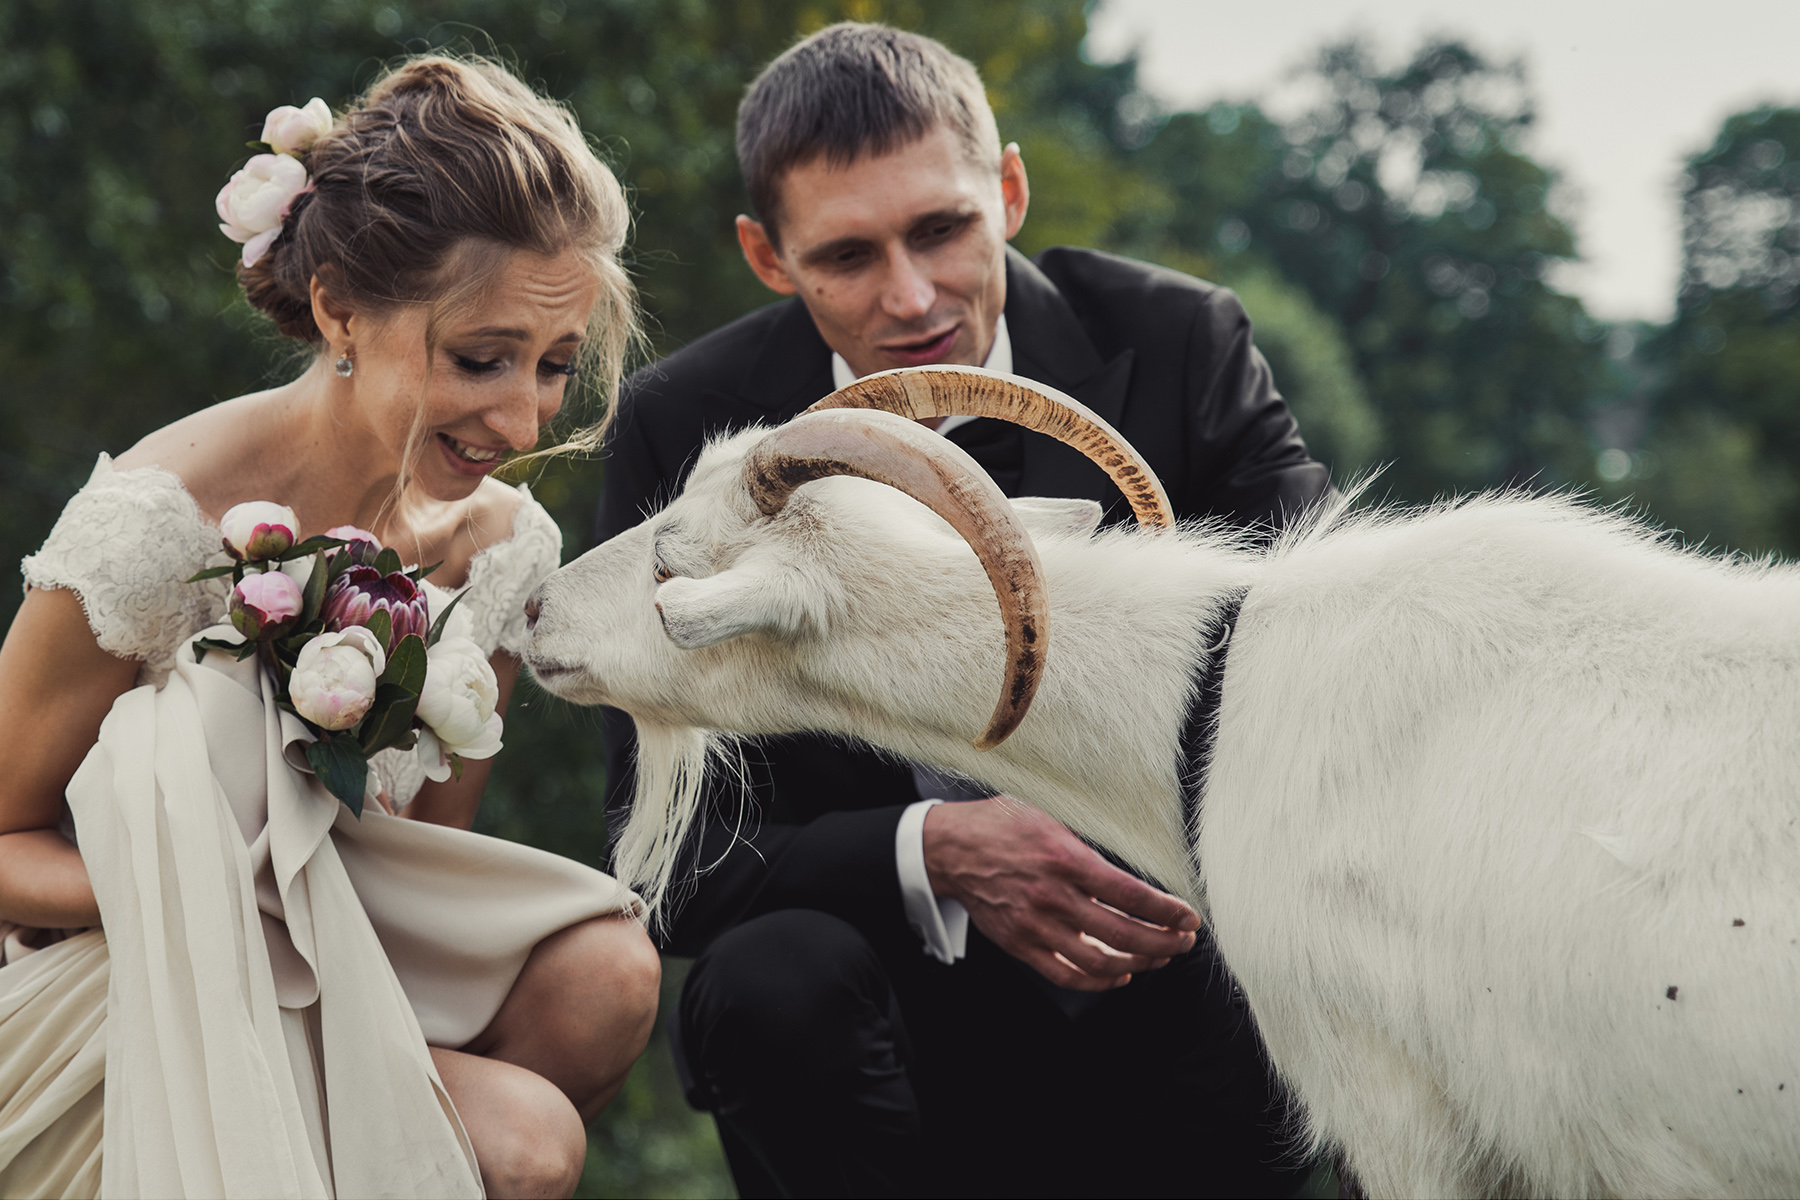 Married couple at a wedding with a goat